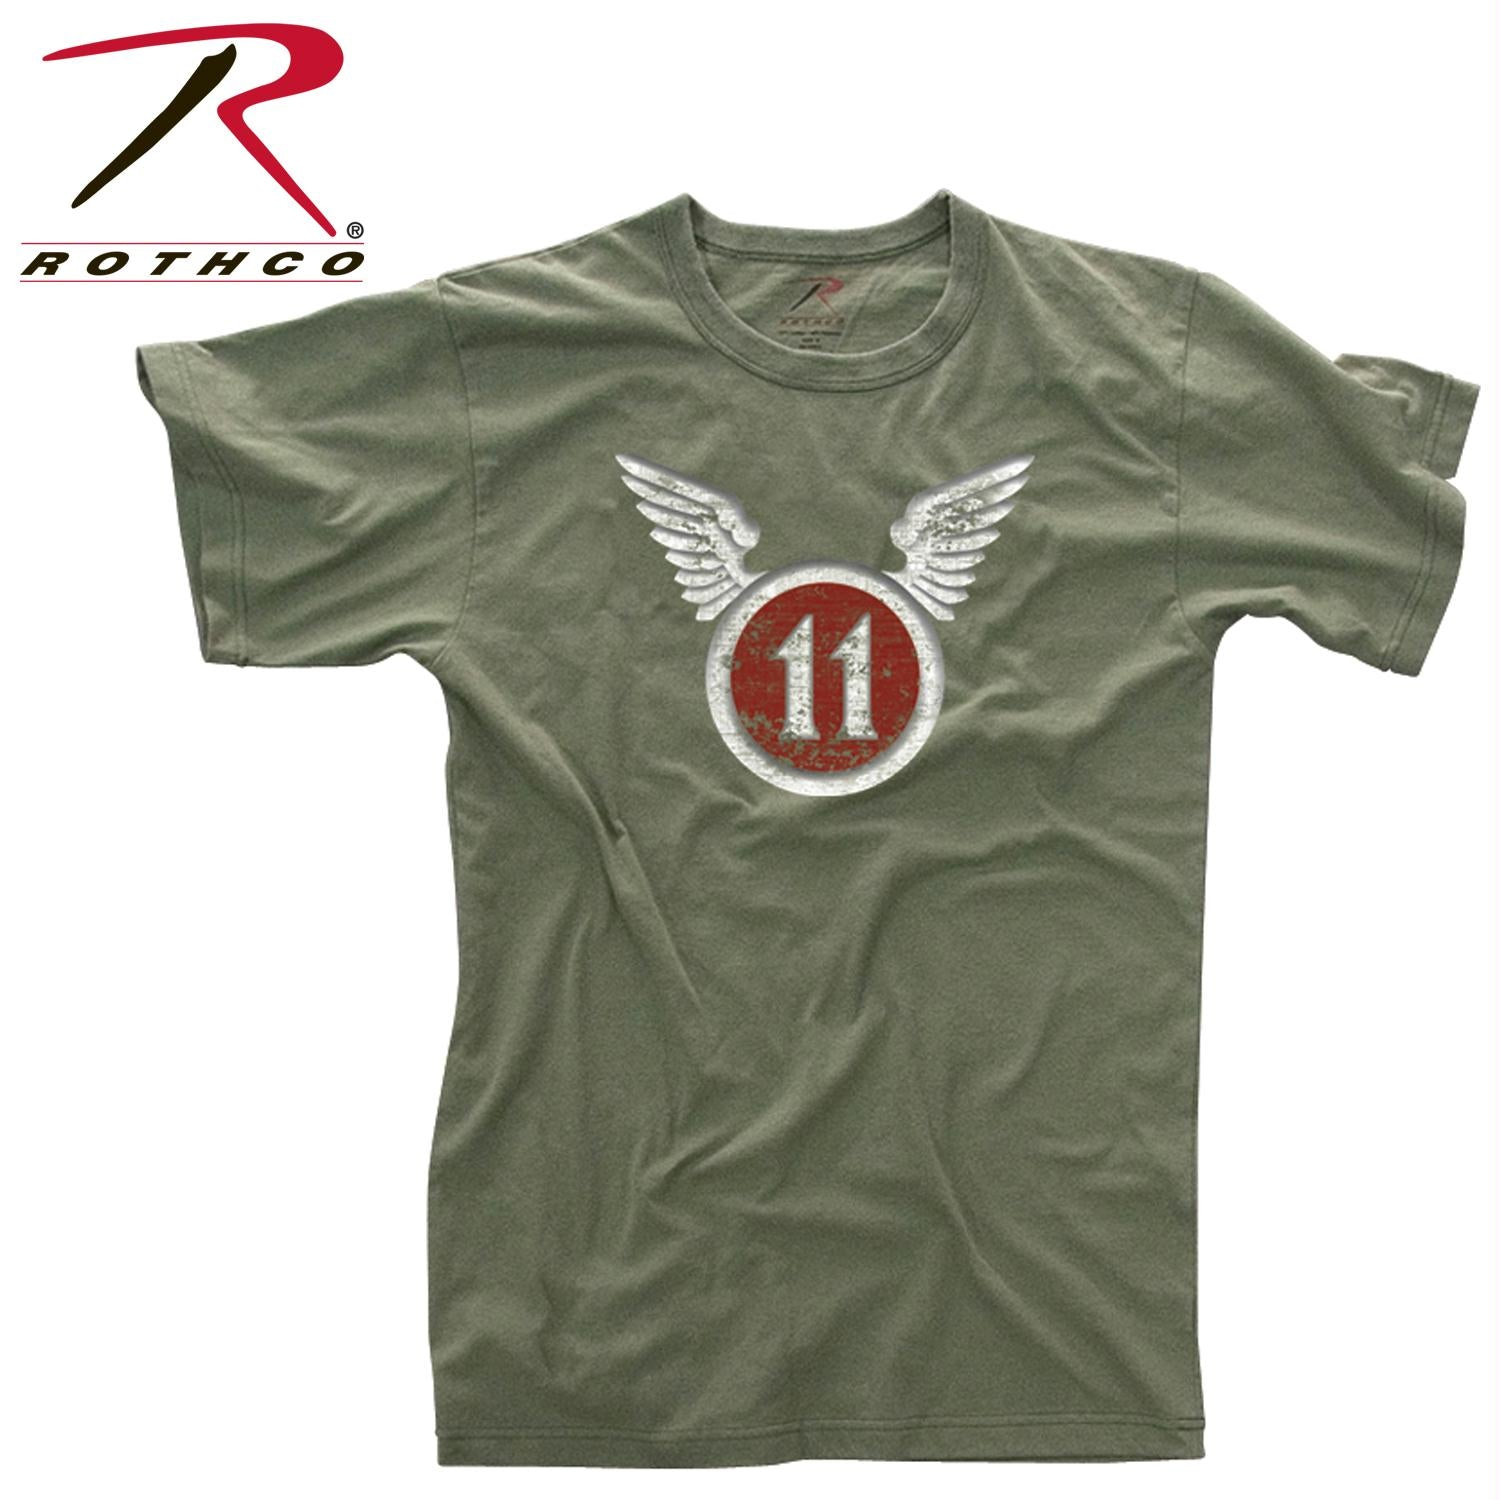 Rothco Vintage ''11th Airborne'' T-Shirt - 2XL